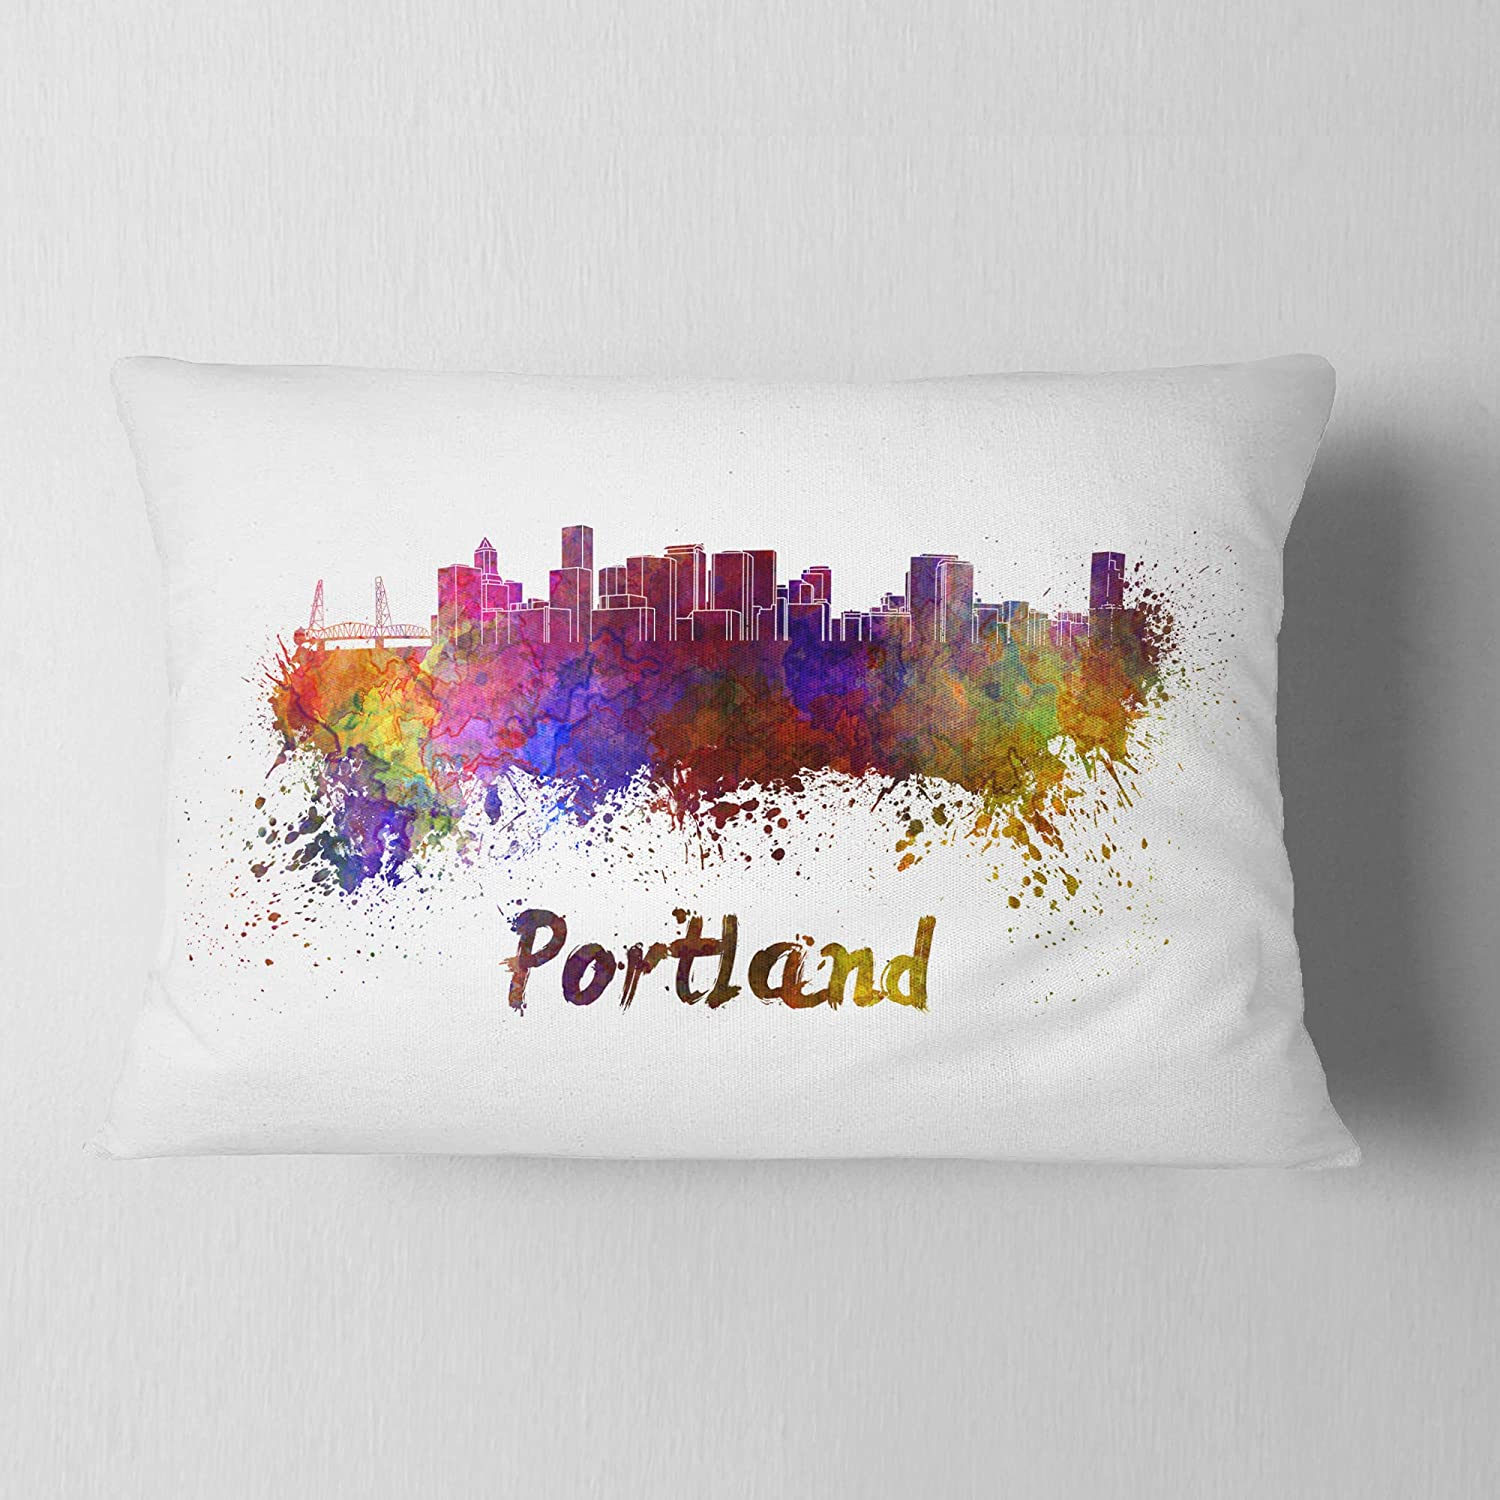 Designart CU6605-12-20 Portland Skyline' Cityscape Lumbar Cushion Cover for Living Room, Sofa Throw Pillow 12 in. x 20 in. in, Insert Printed On Both Side